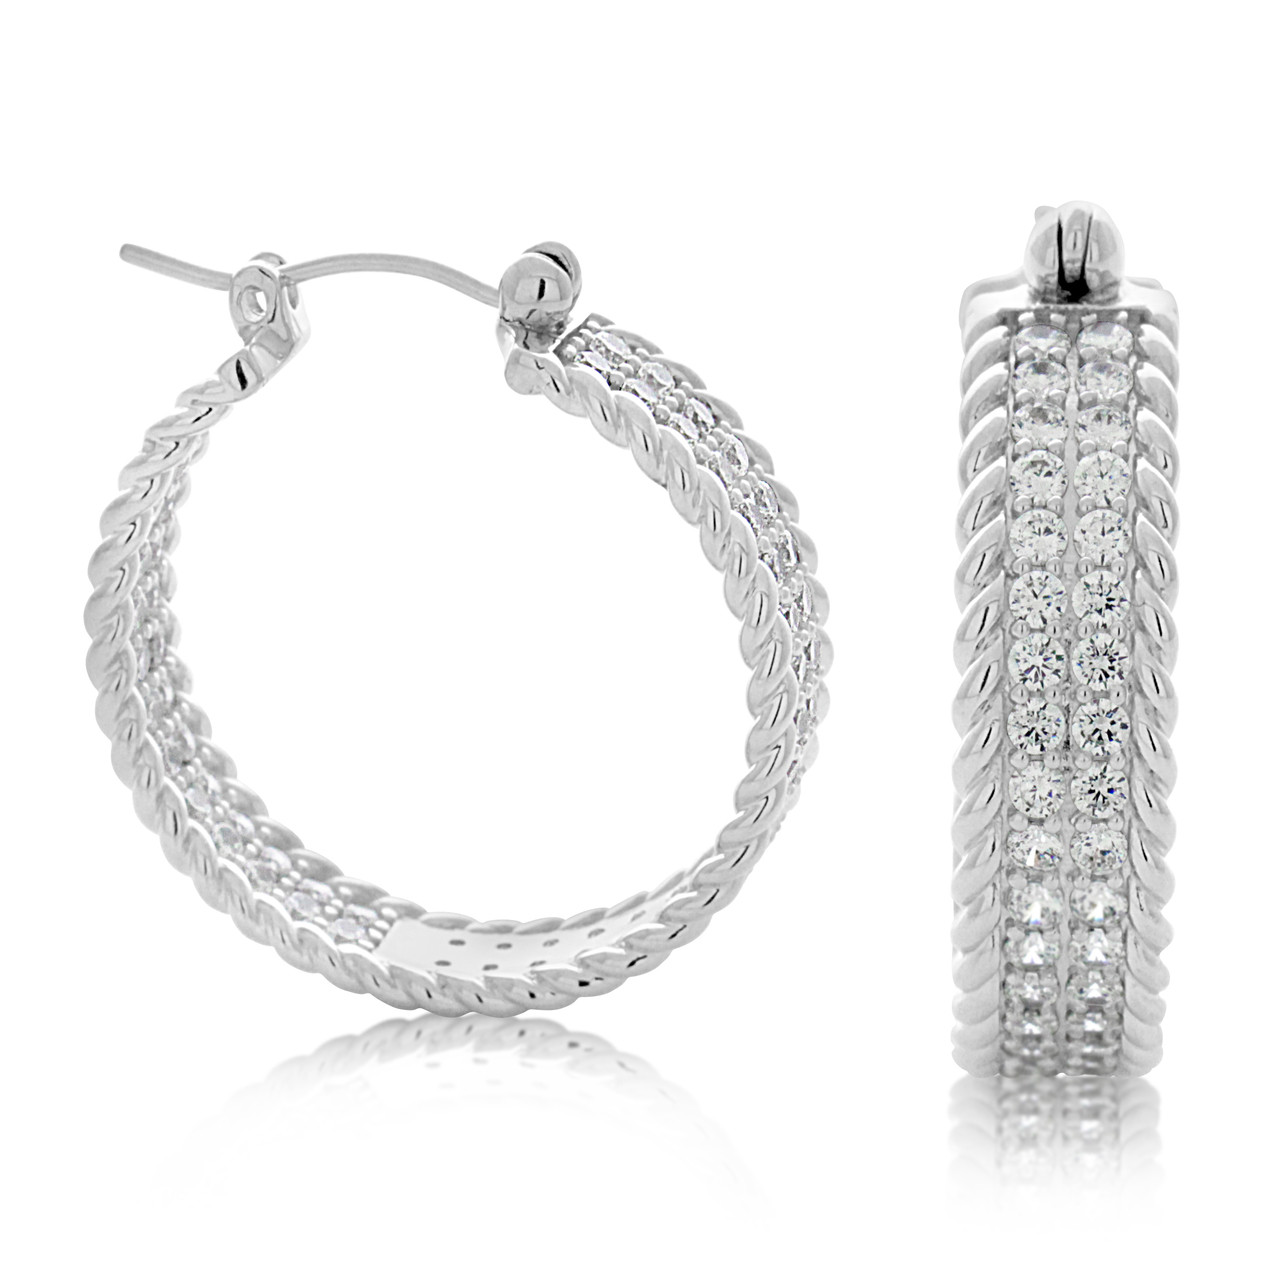 df71b87f65ae02 Sterling Silver Pave Cable Cubic Zirconia Huggy Hoop Earrings - Artune  Jewelry Online